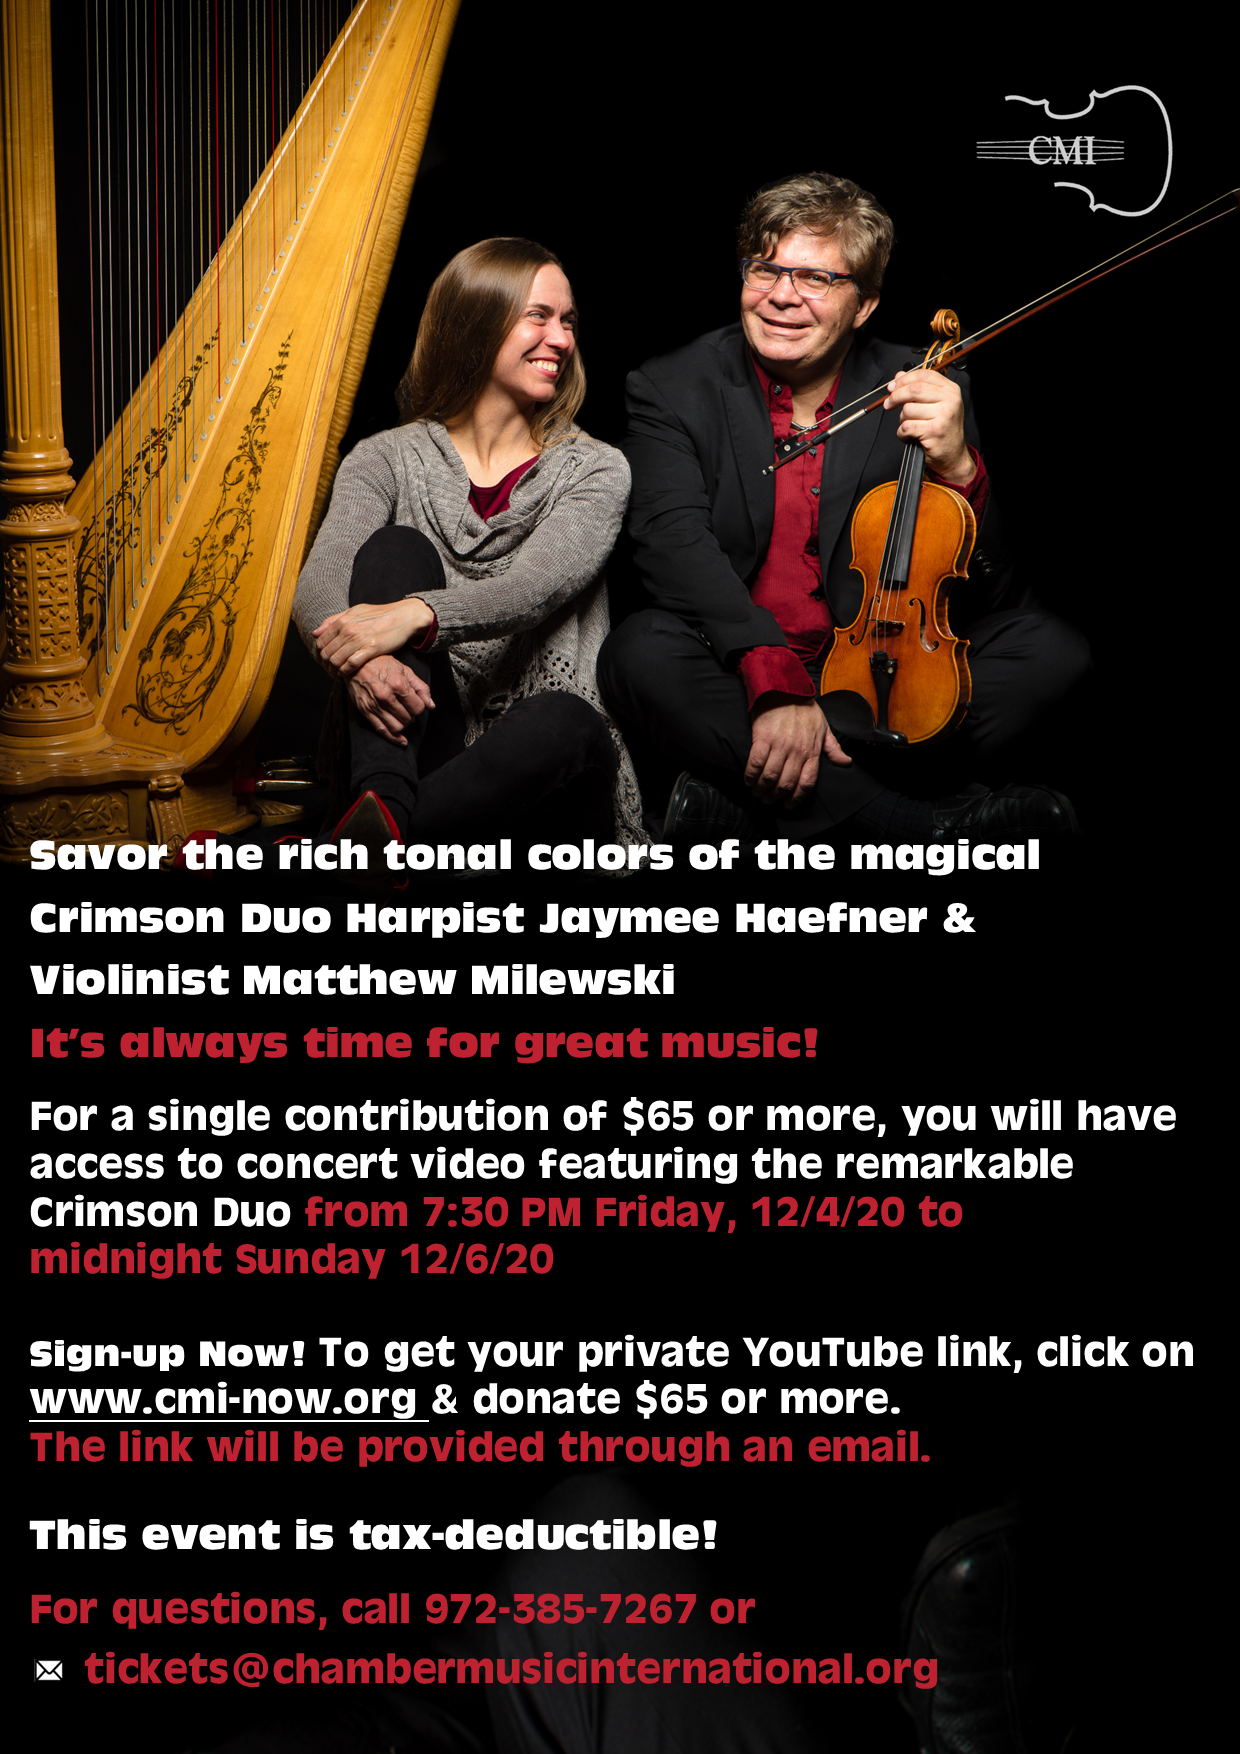 CMI Presents The Crimson Duo Virtual Special Event!  To purchase tickets and receive a link to the virtual event, please click on the links below or call 972-385-7267